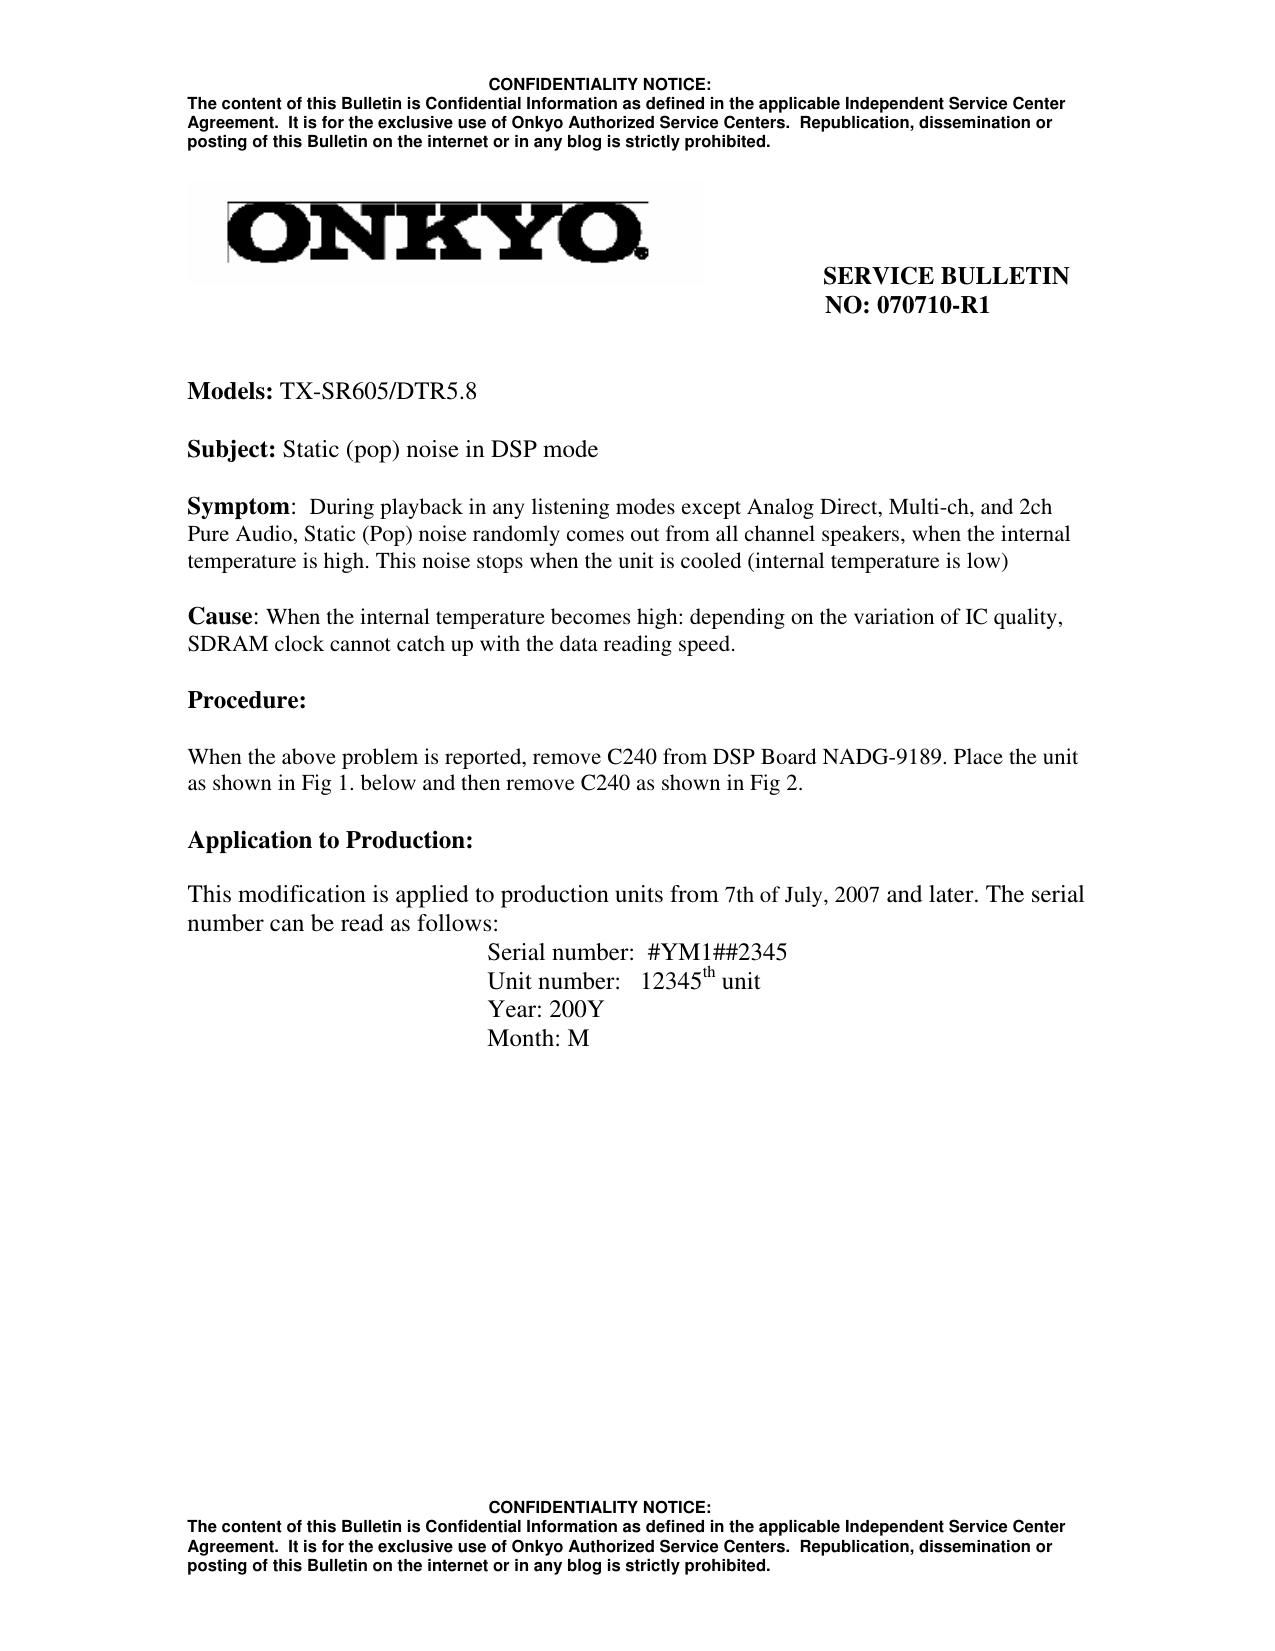 ... Array - onkyo dtr 5 8 service manual rh audioservicemanuals ...